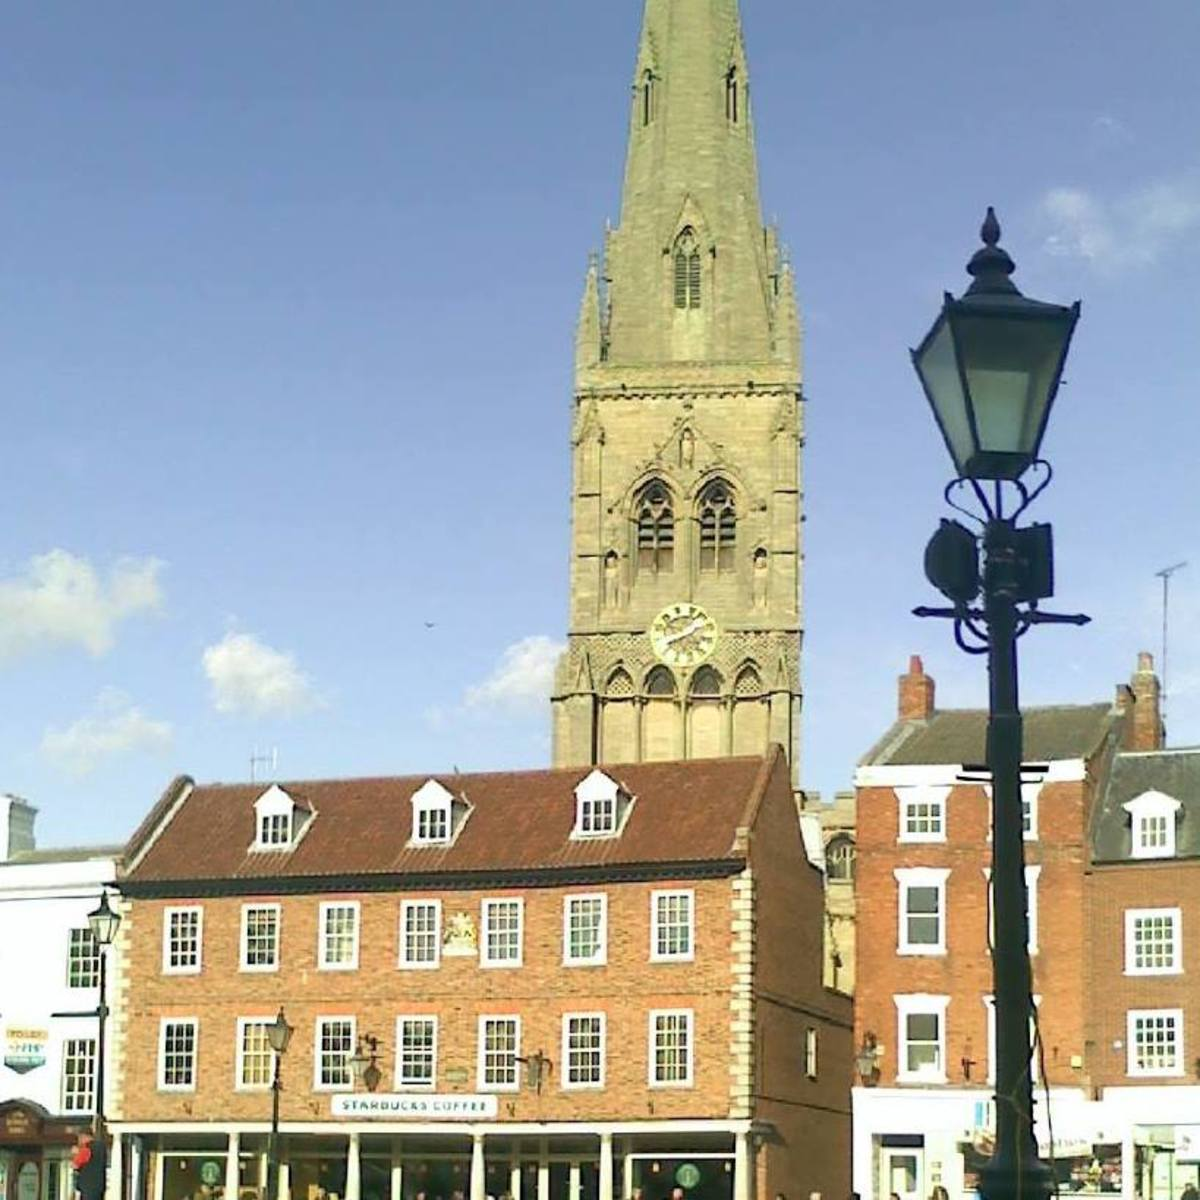 The Church of St. Mary Magdalene seen from Newark Market Place. The building centre-left is the Moot Hall.